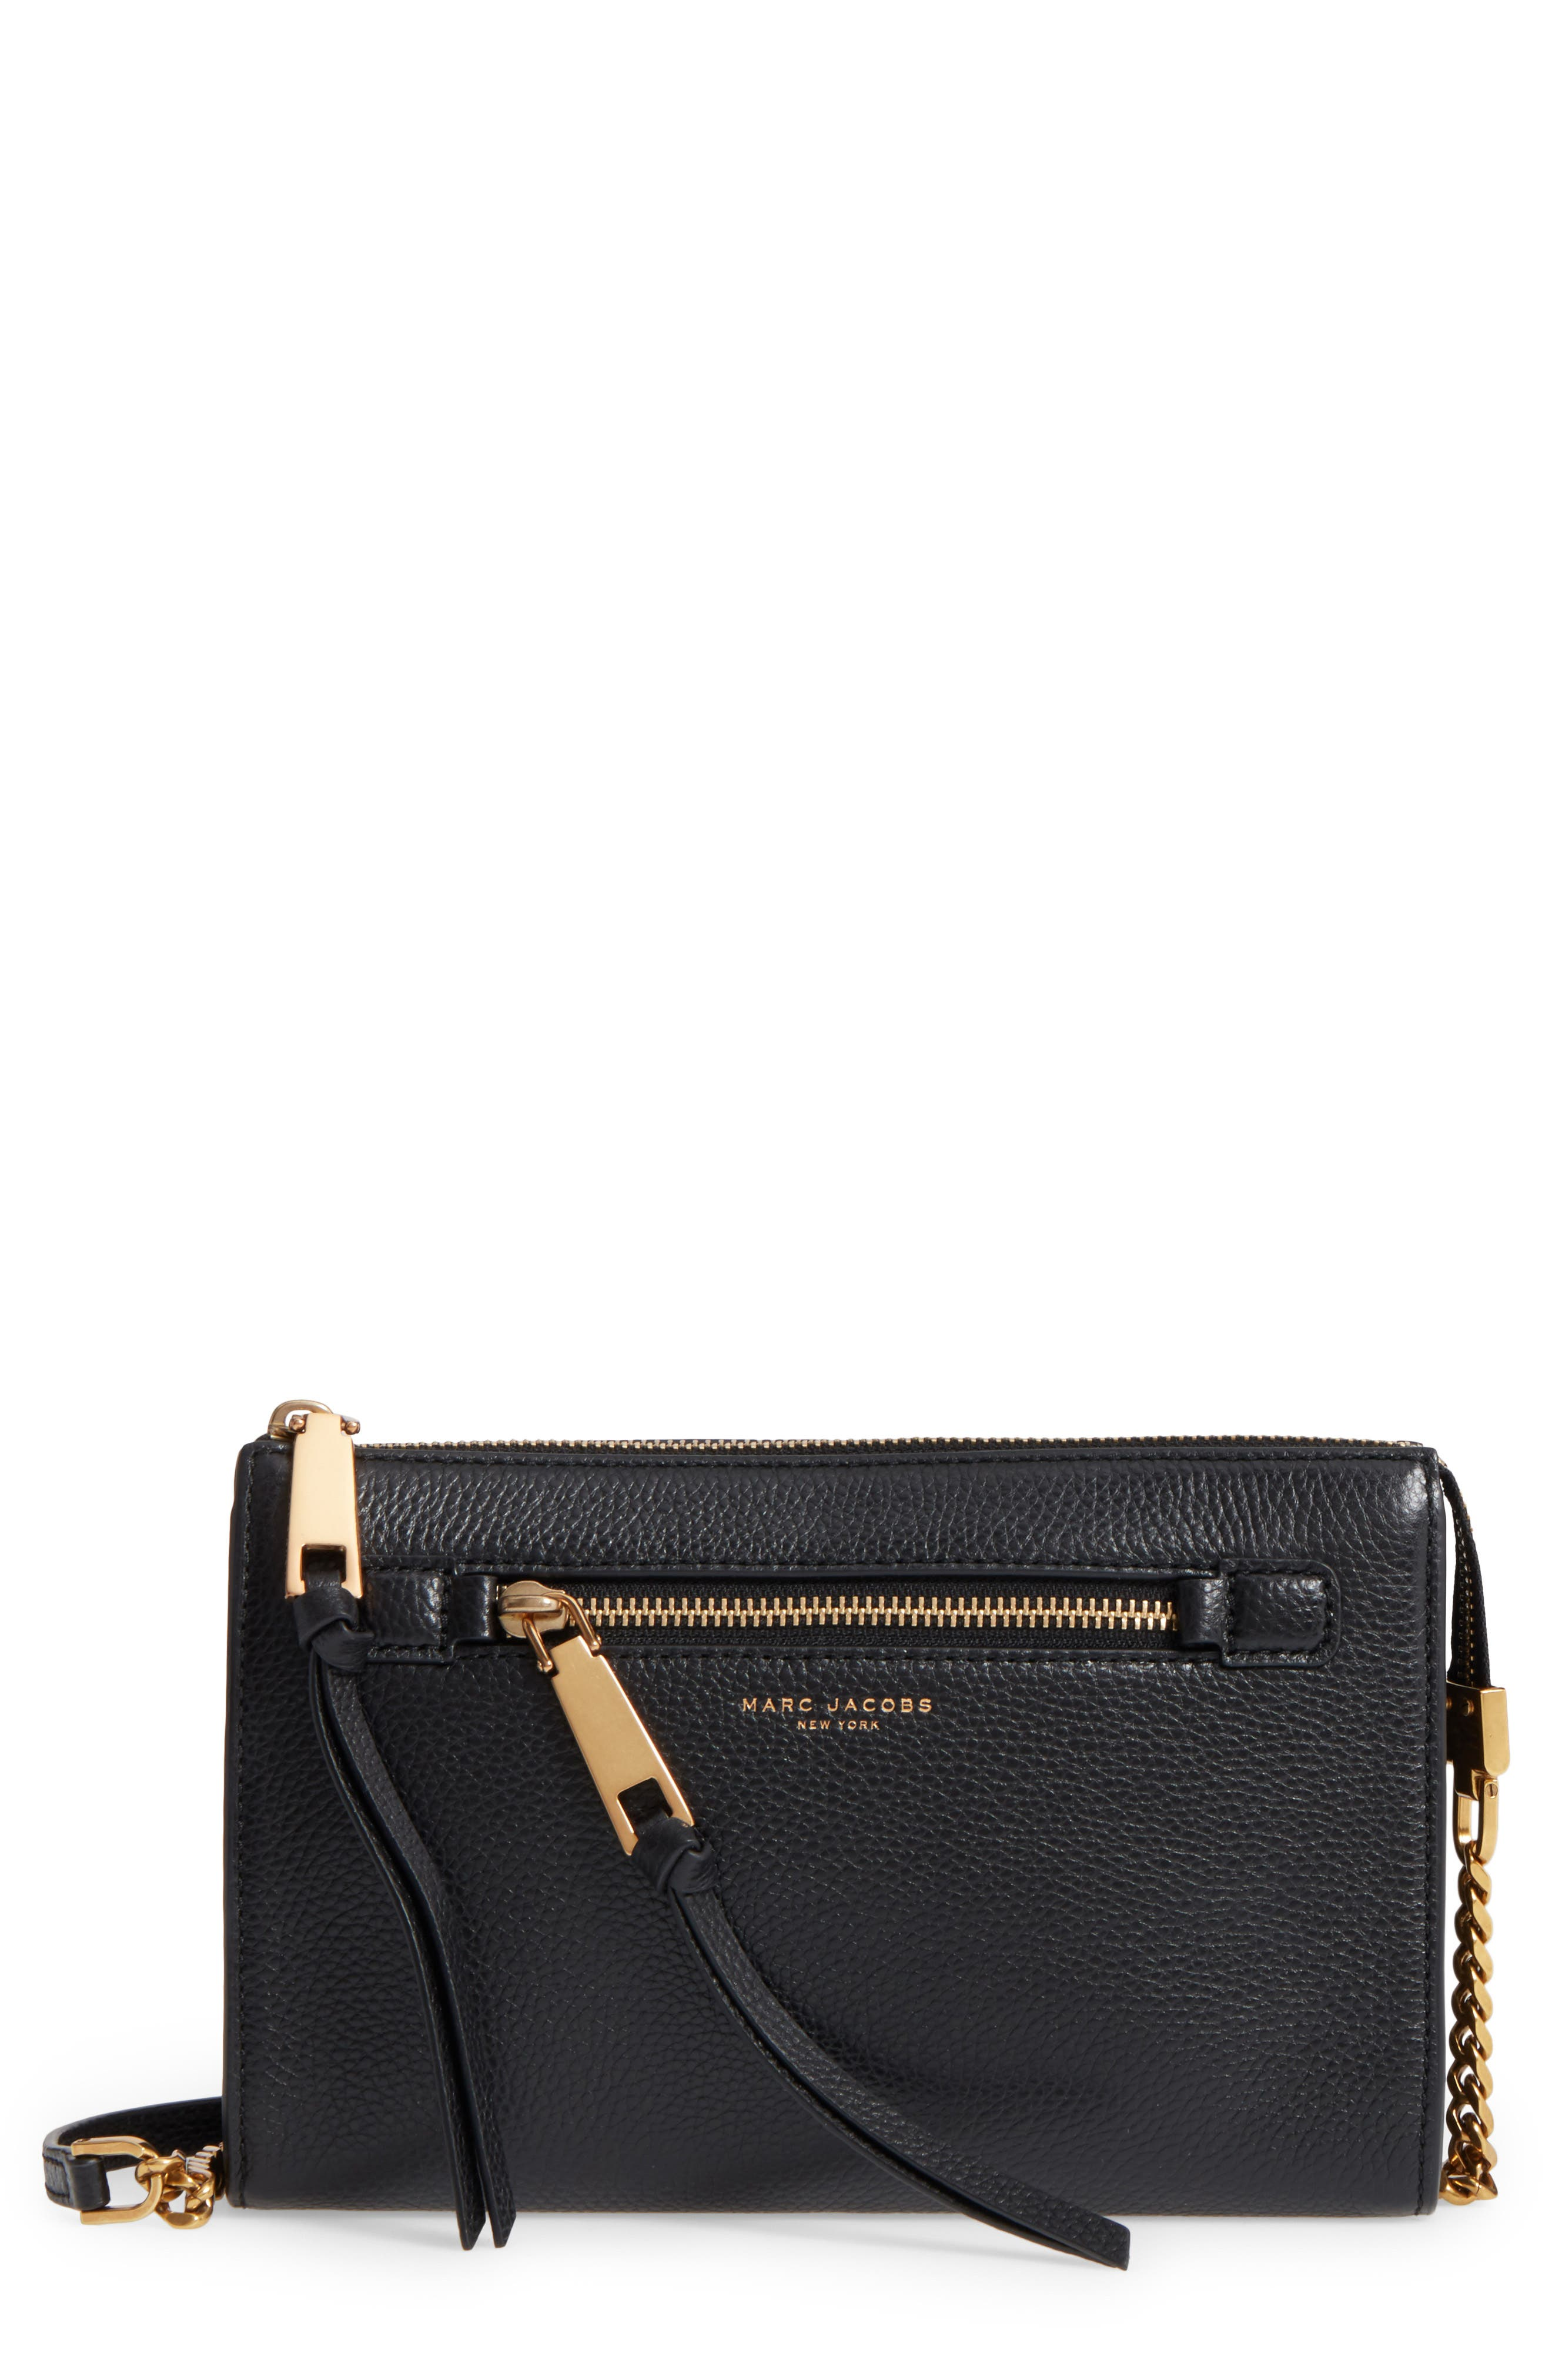 Small Recruit Leather Crossbody Bag,                         Main,                         color, 001